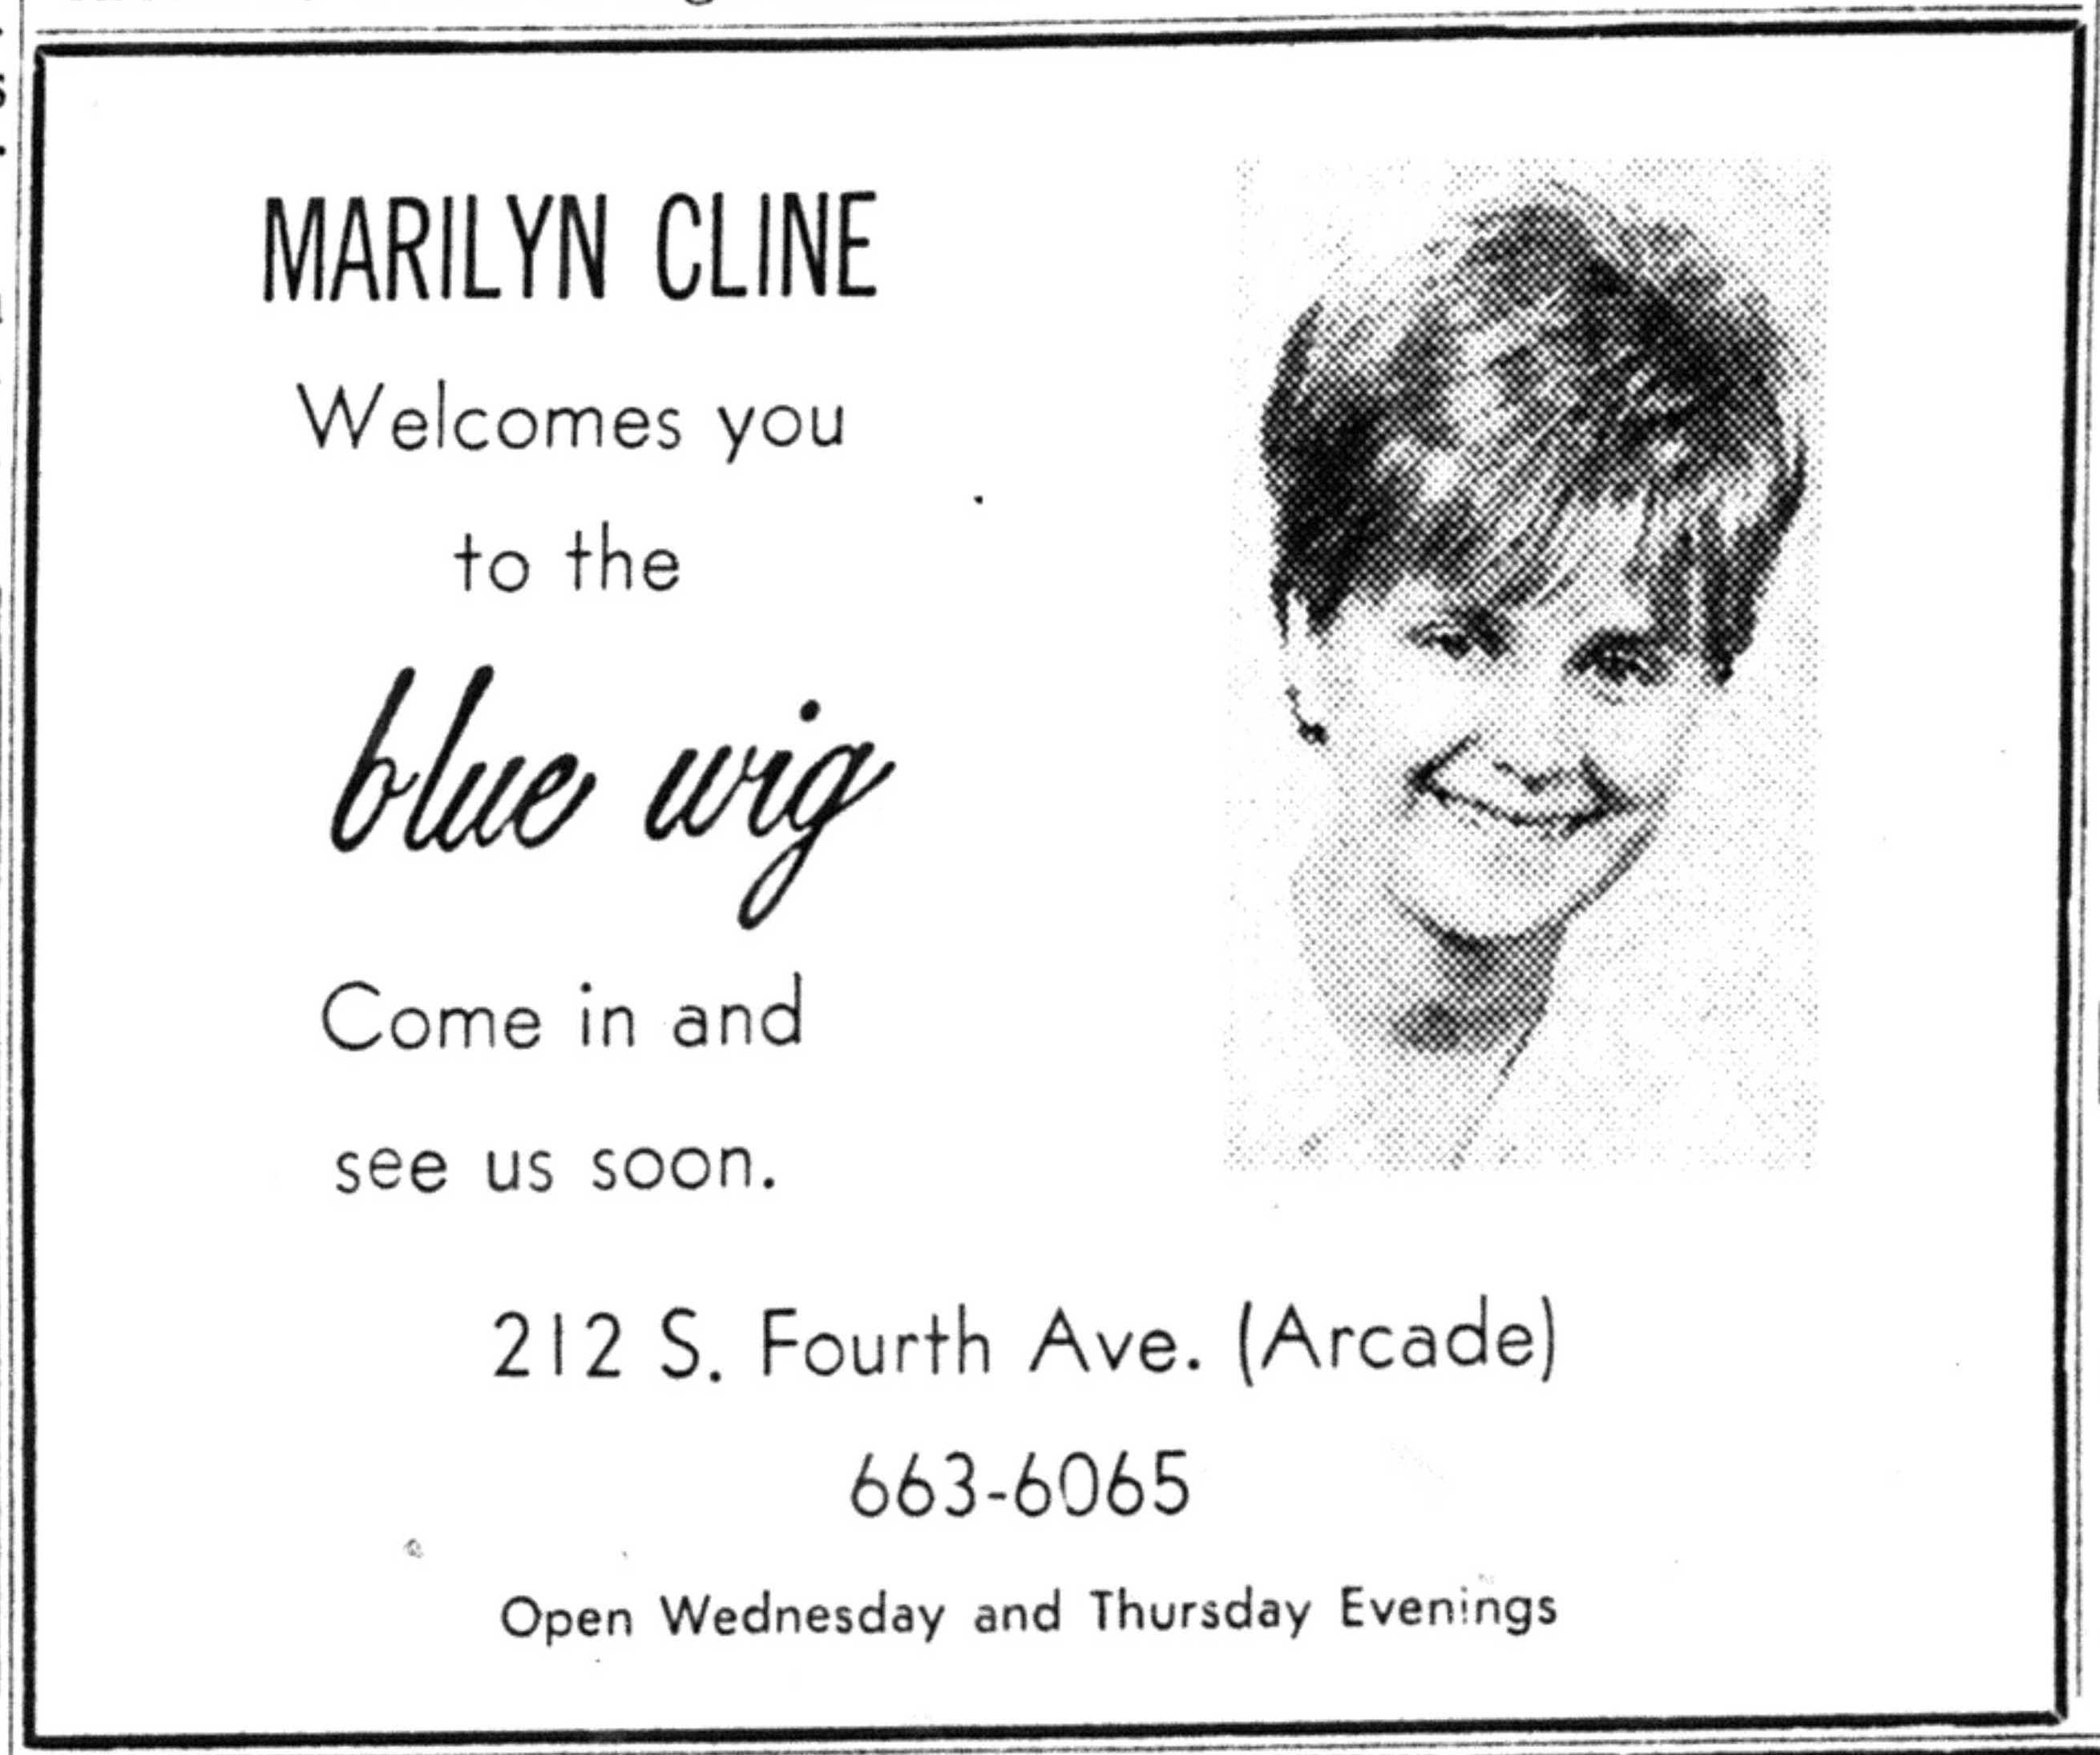 the blue wig [advertisement] image